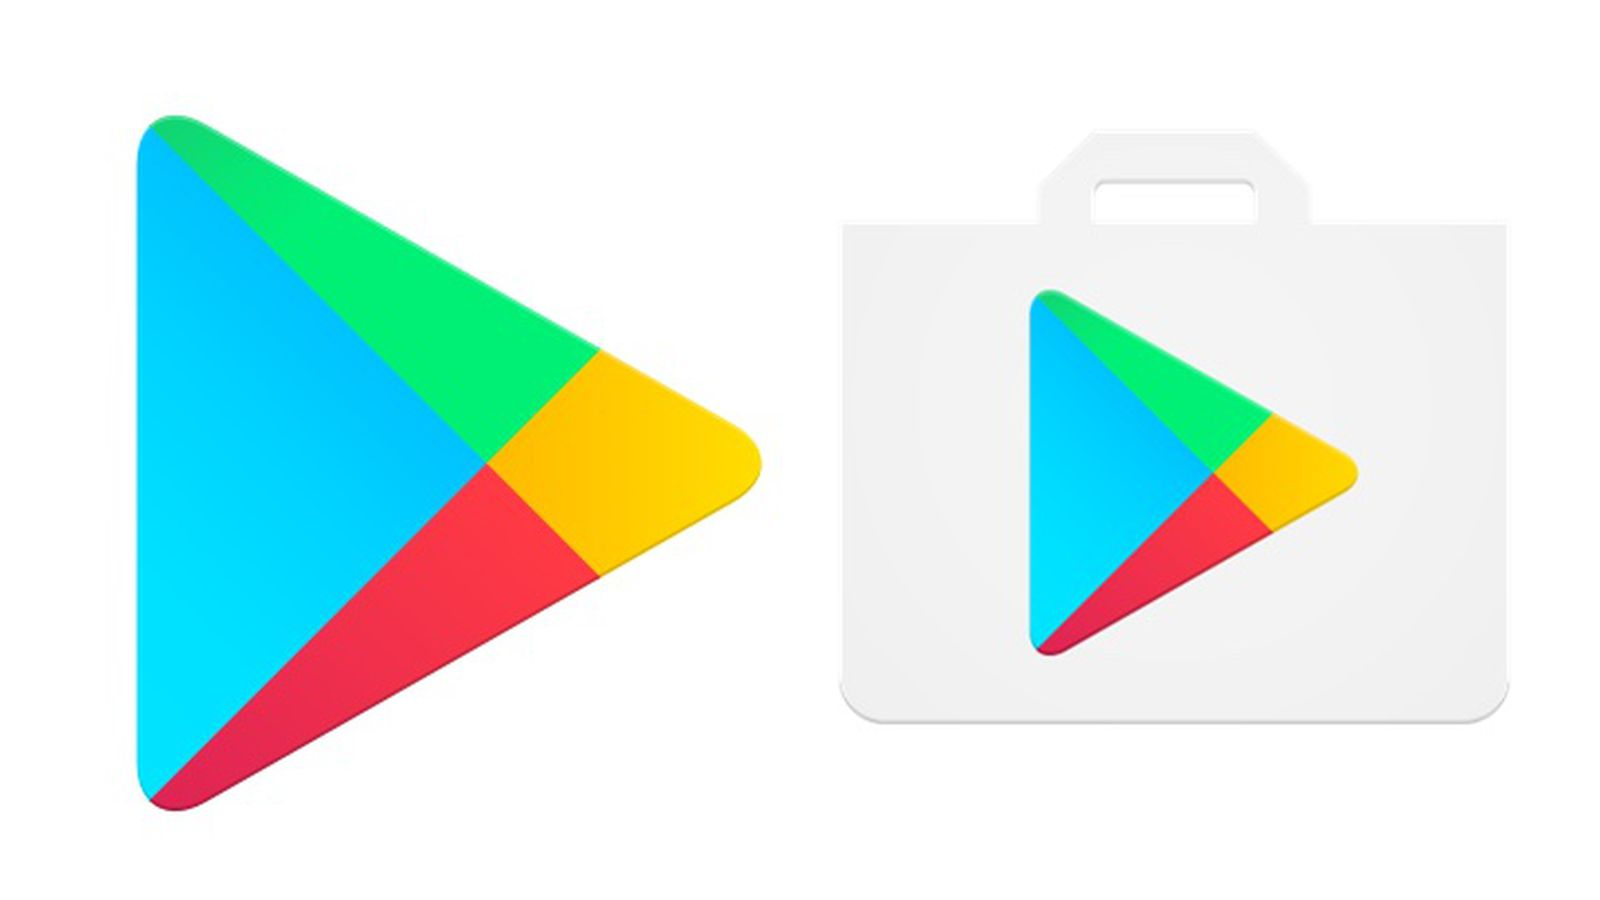 Google Drops The Shopping Bag From The Play Store Icon